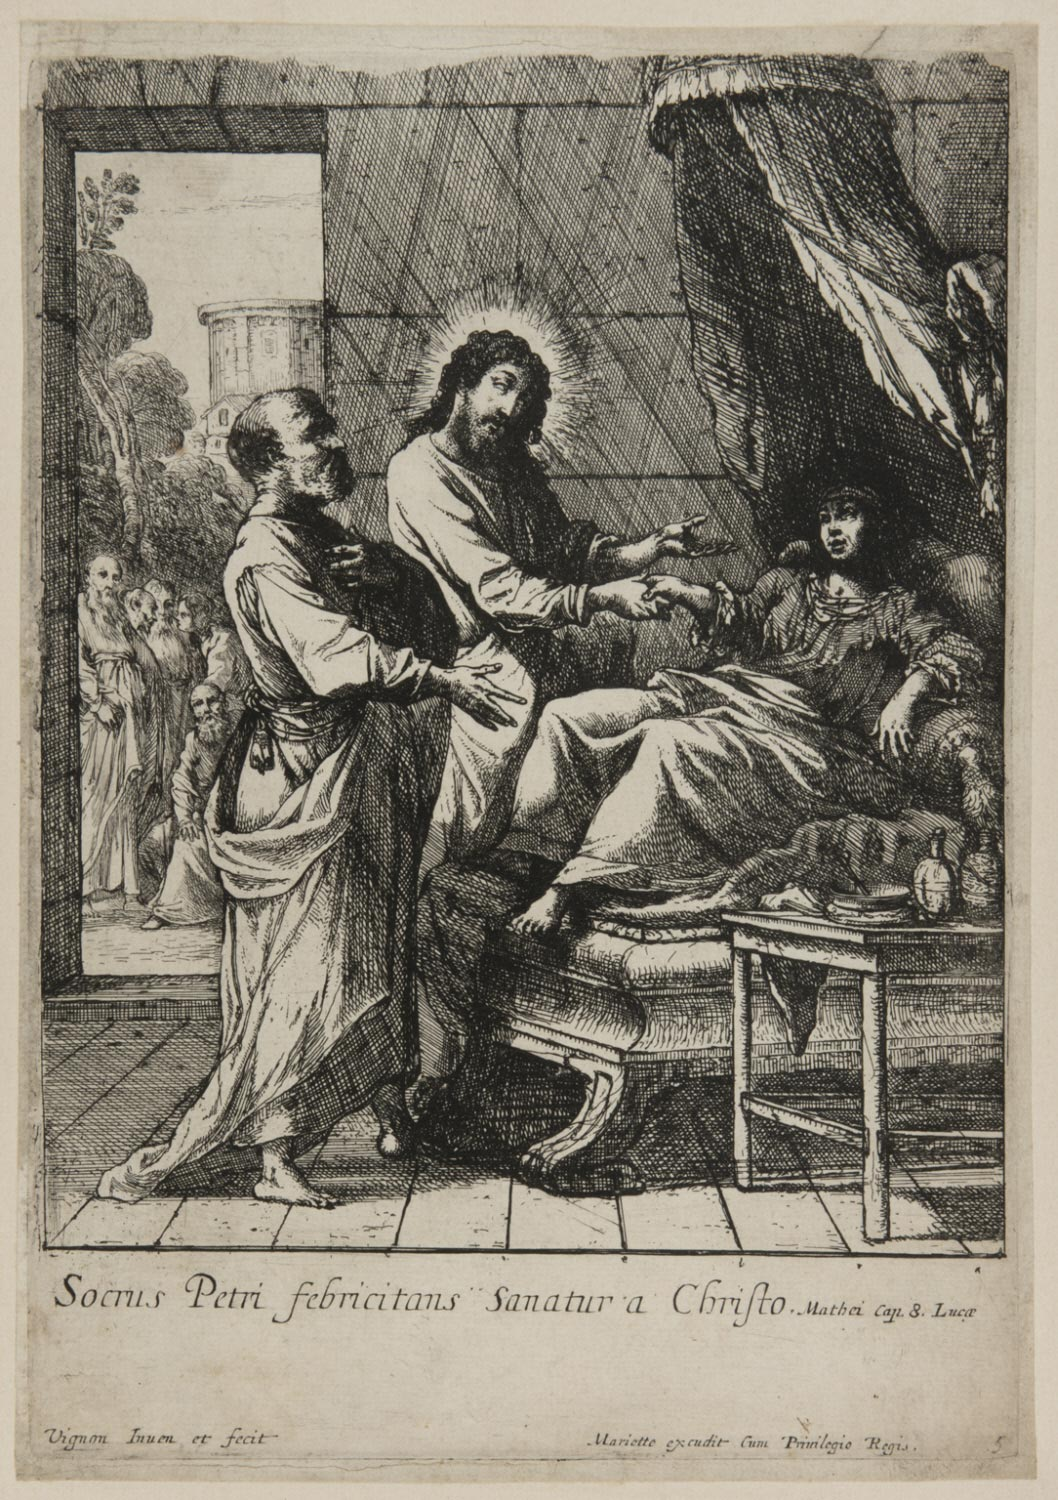 Christ Healing the Mother-in-Law of Saint Peter  , 1630s, by Claude Vignon, French from the  Philadelphia Museum of Art